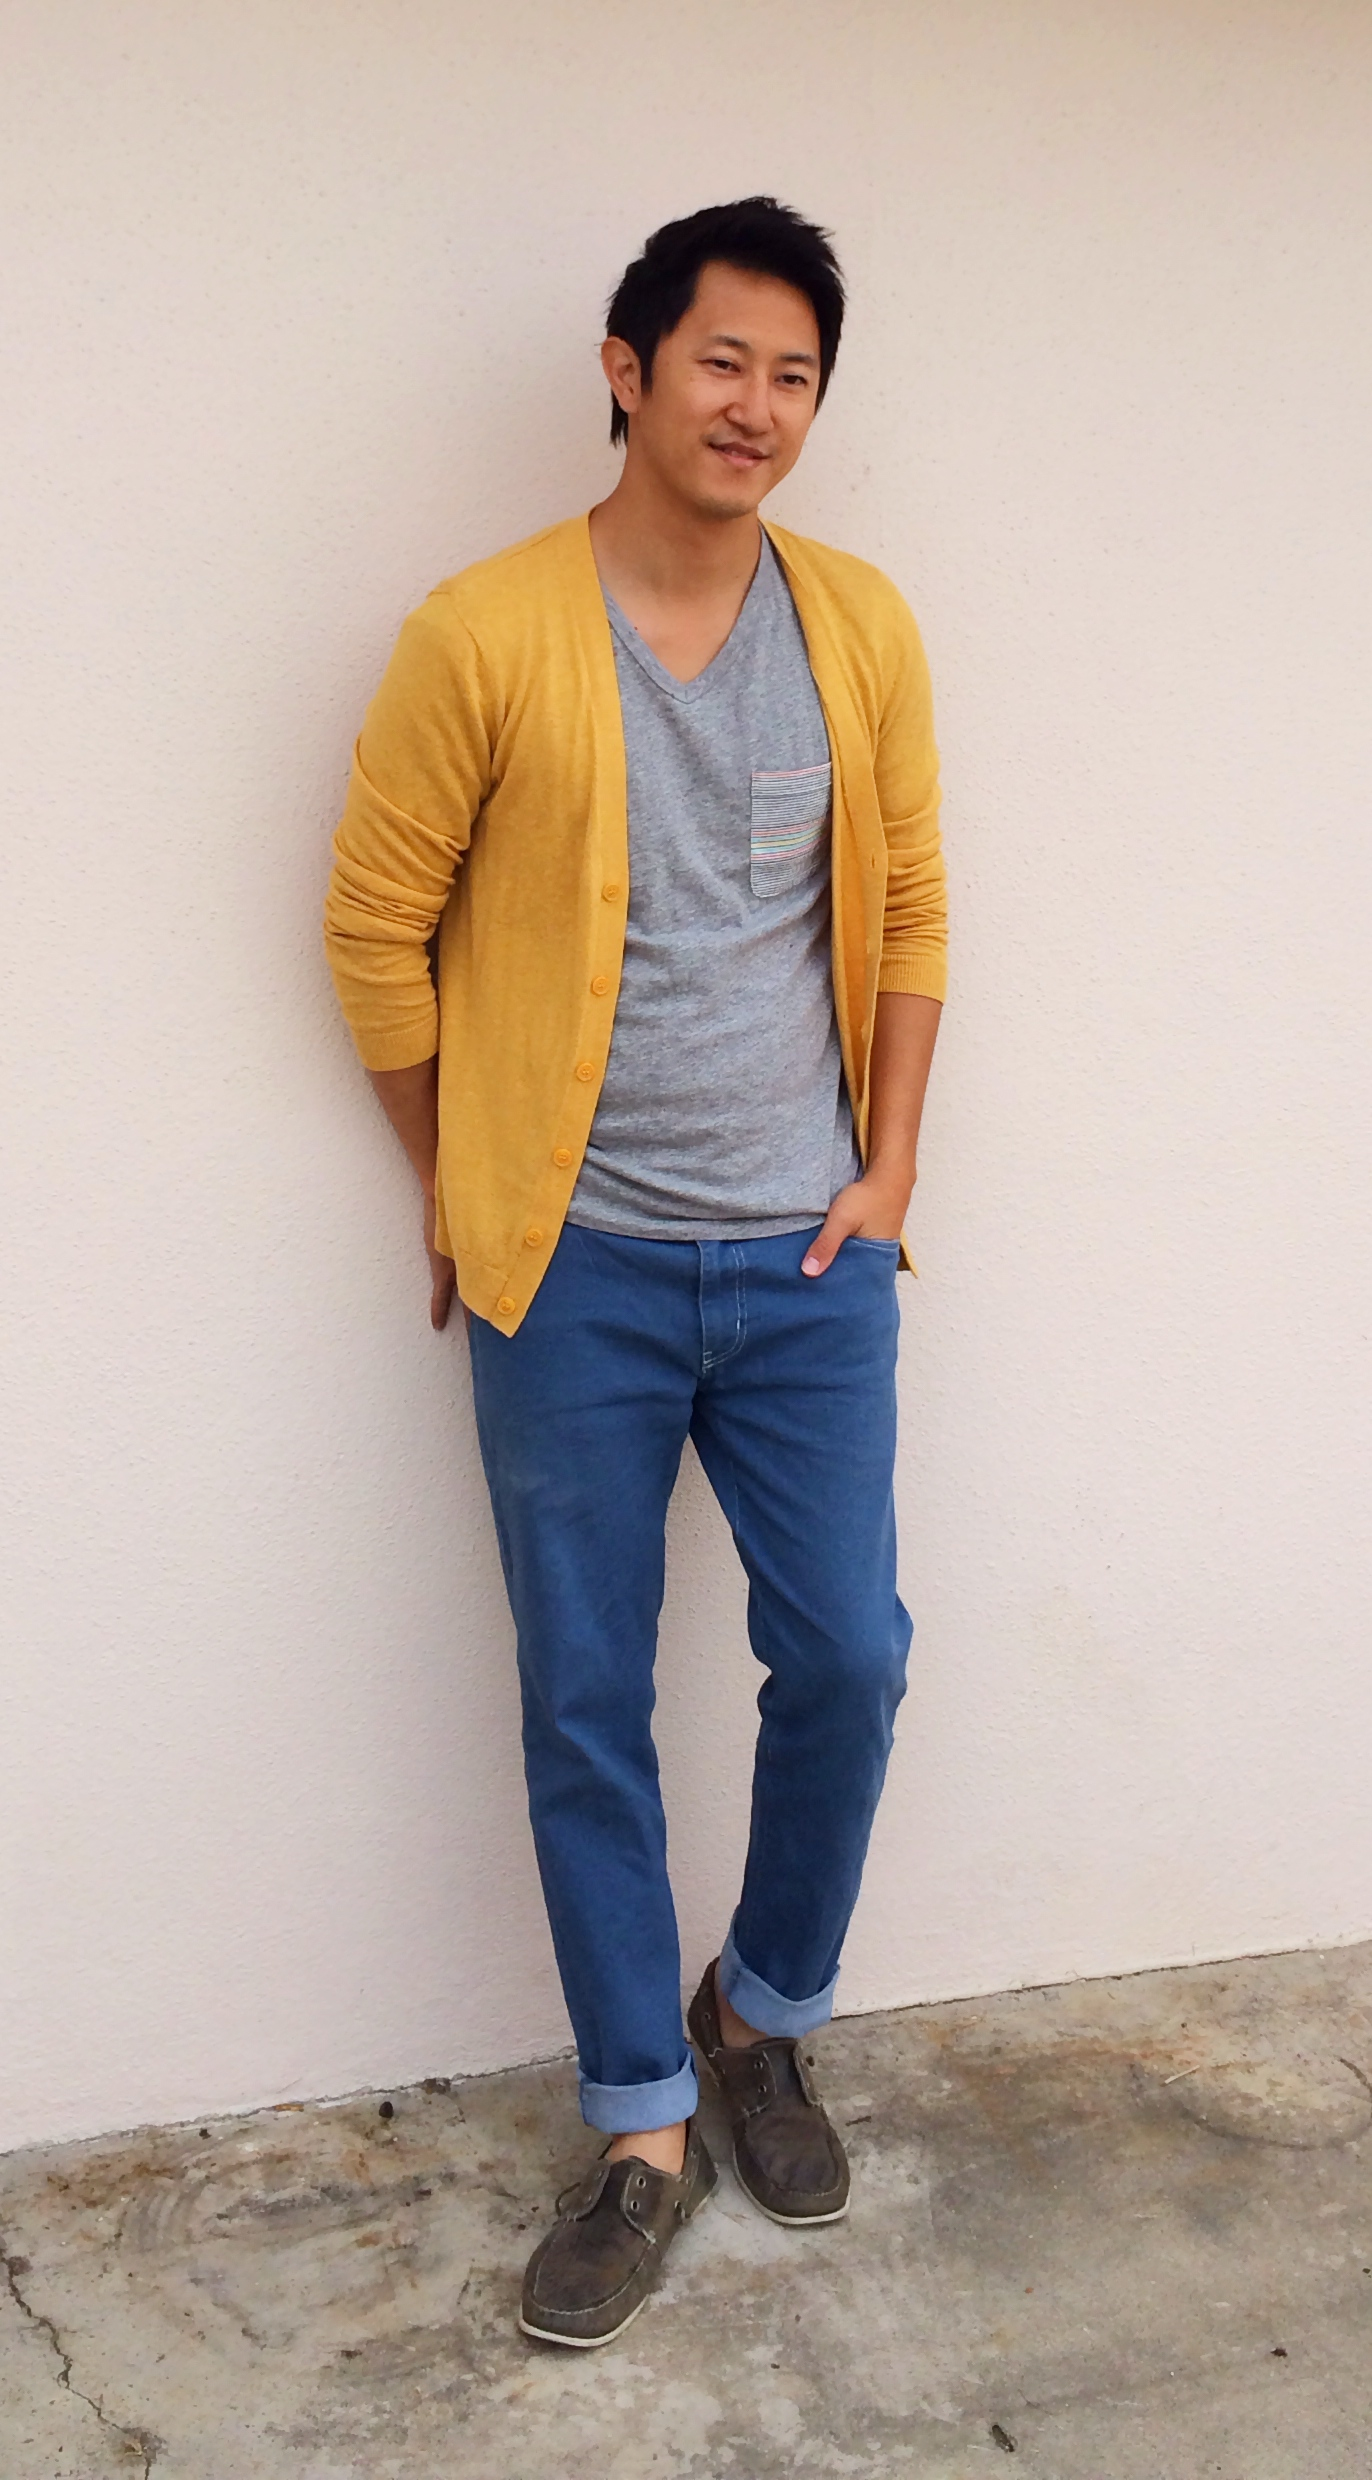 How to Choose What to Wear u0026 (Whatu2019s Up w/Mustard part 2) u2013 The Practicality